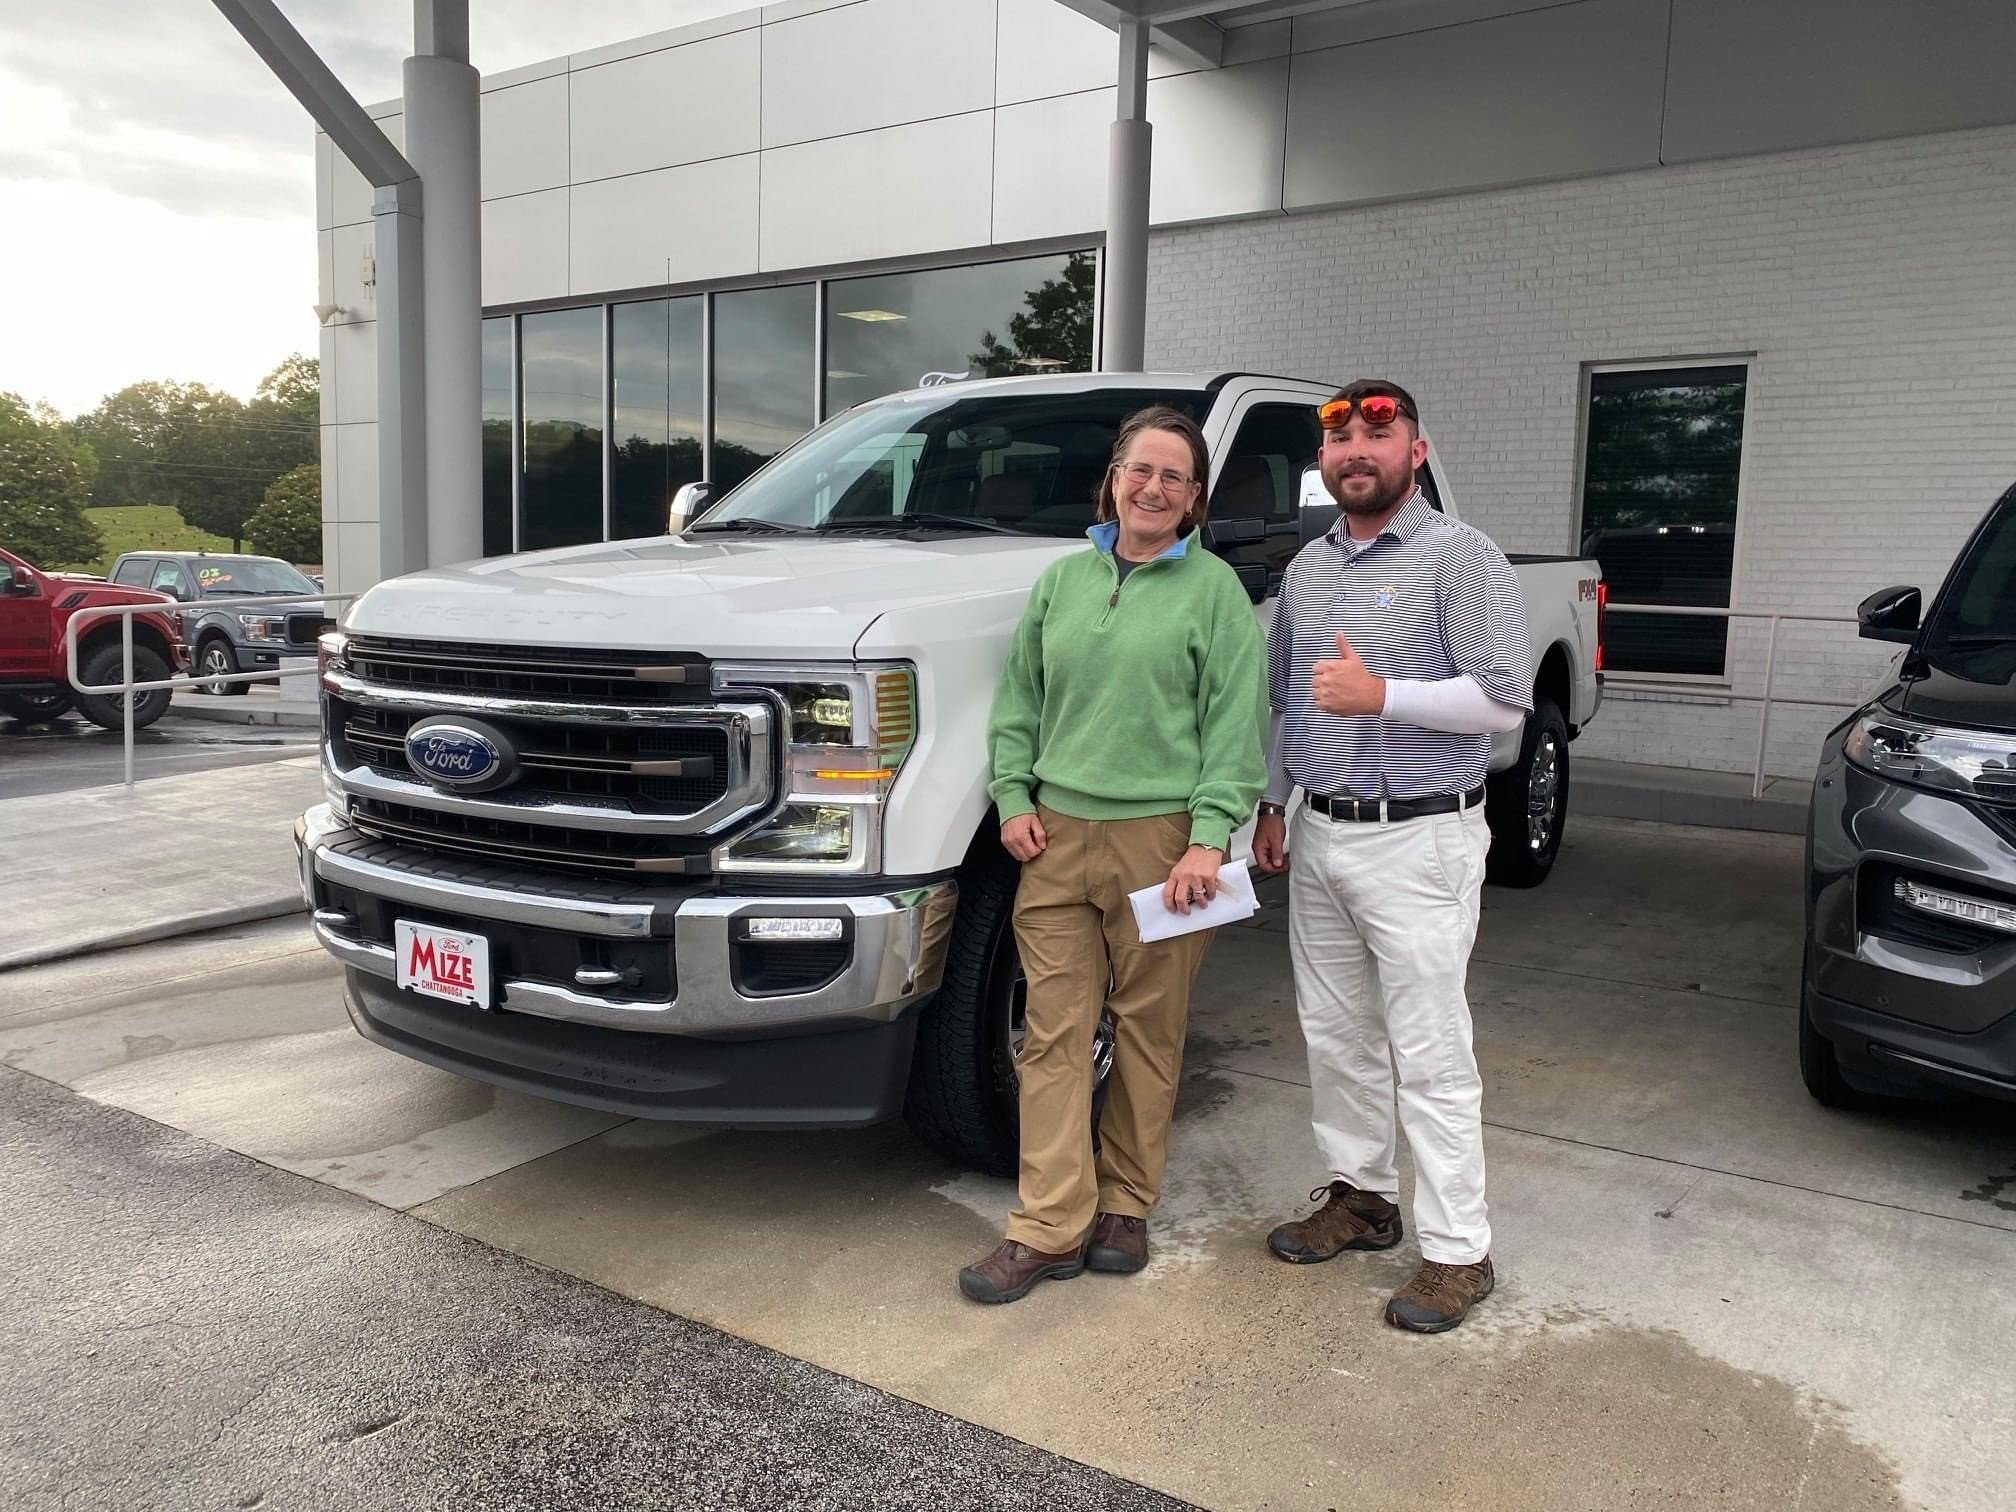 buying a white f150 at Marshal Mize Ford in Hixson, TN